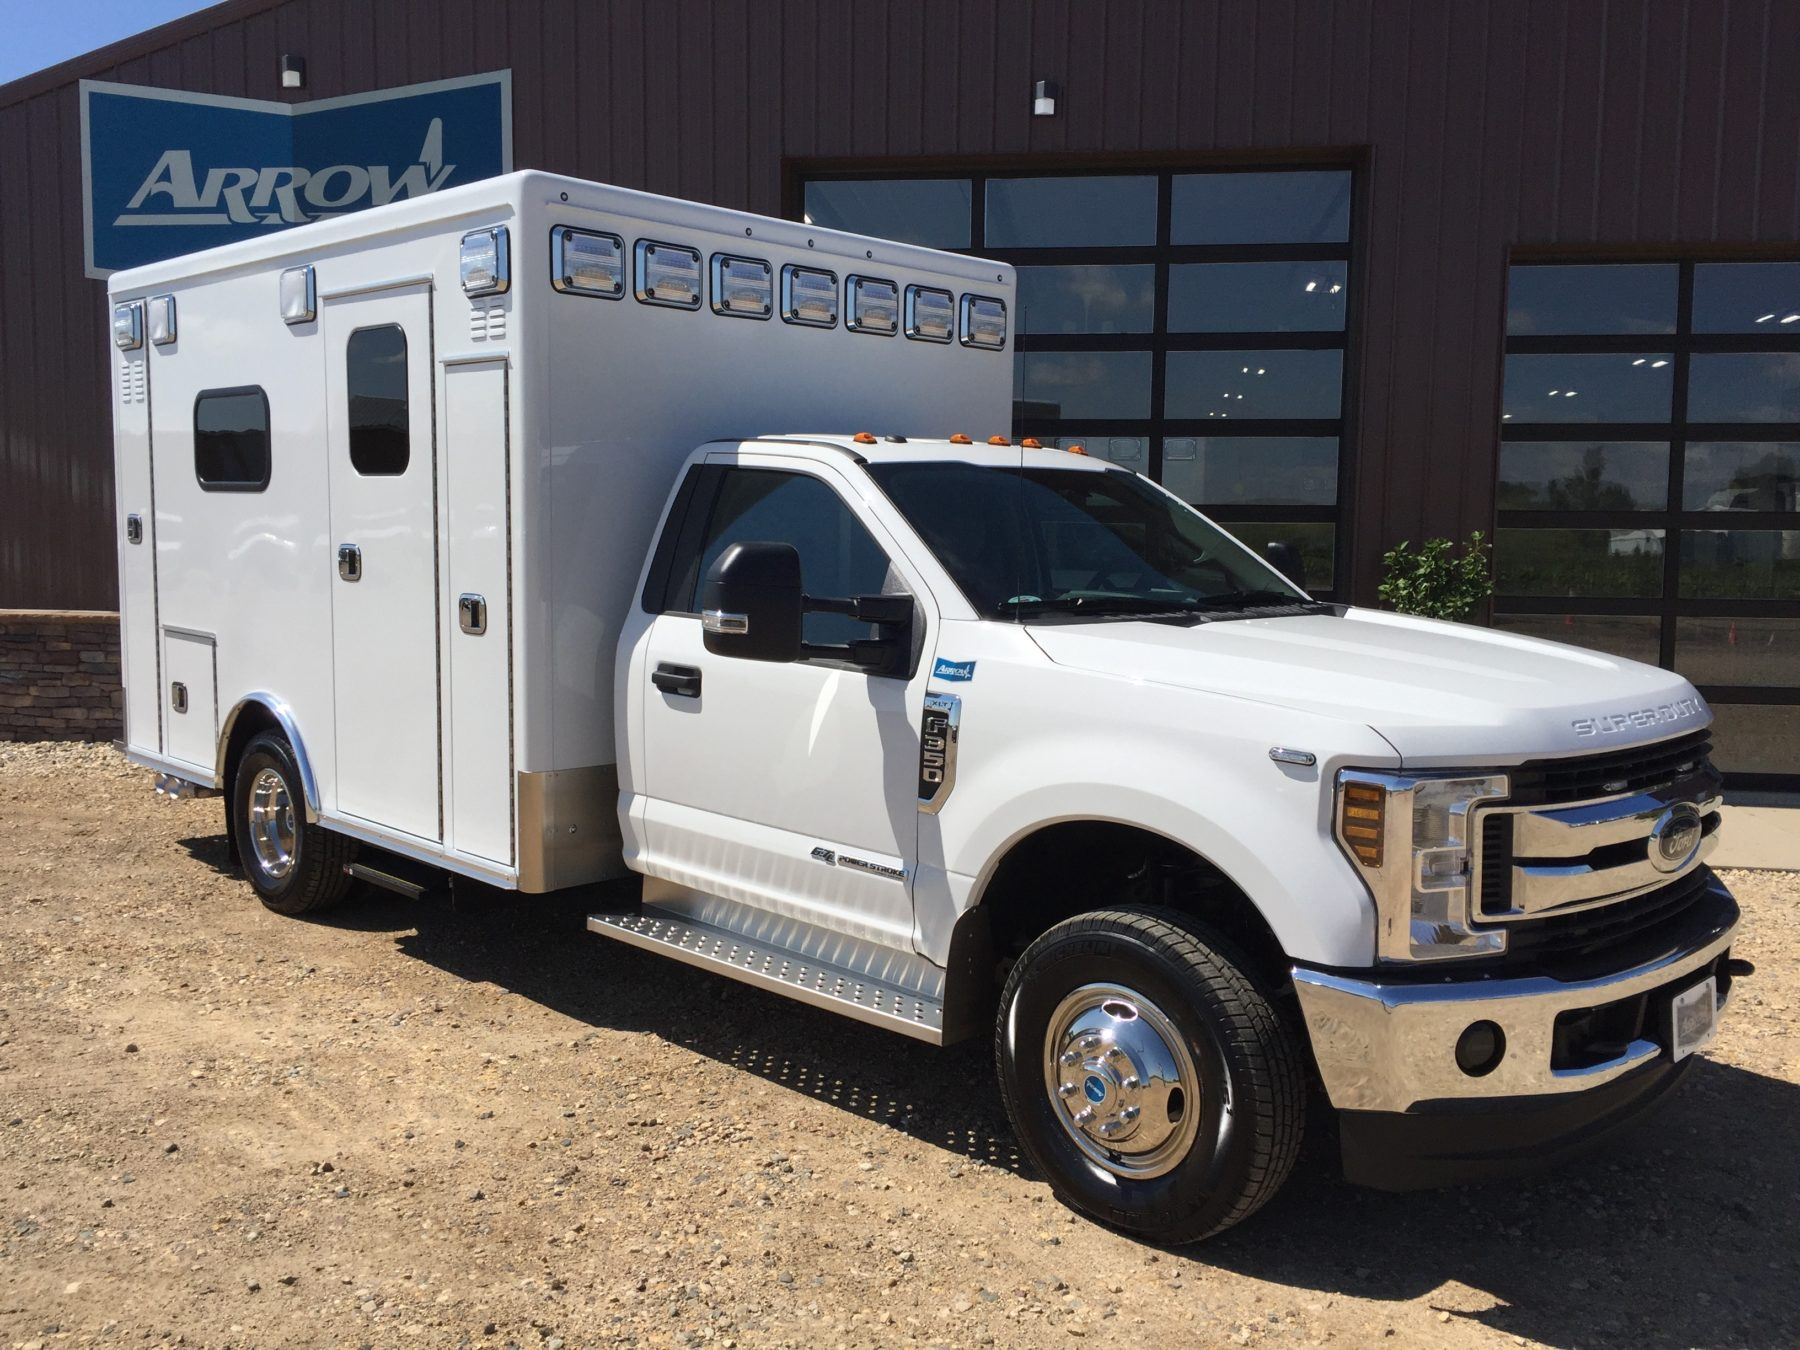 2018 Ford F350 4x4 Type 1 Ambulance For Sale – Picture 3